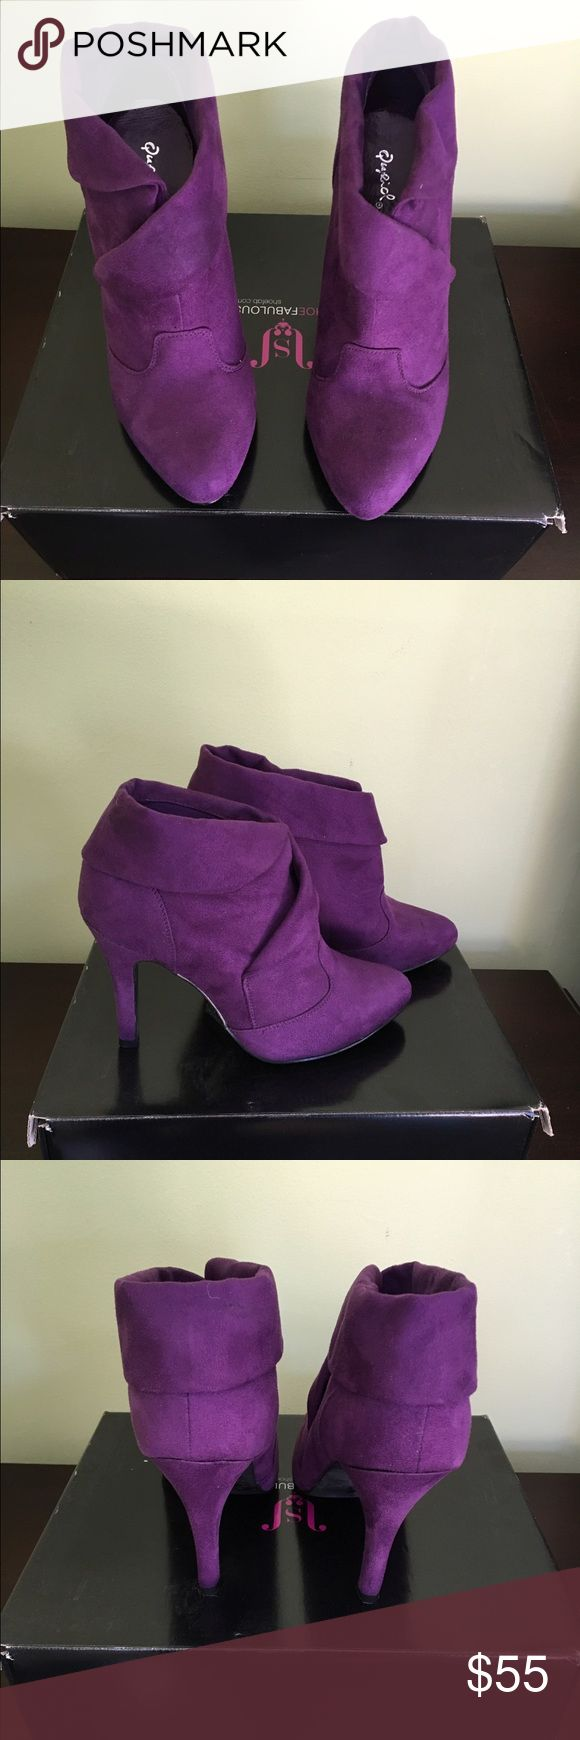 Gorgeous purple booties Very comfortable and stylish booties JustFab Shoes Ankle Boots & Booties